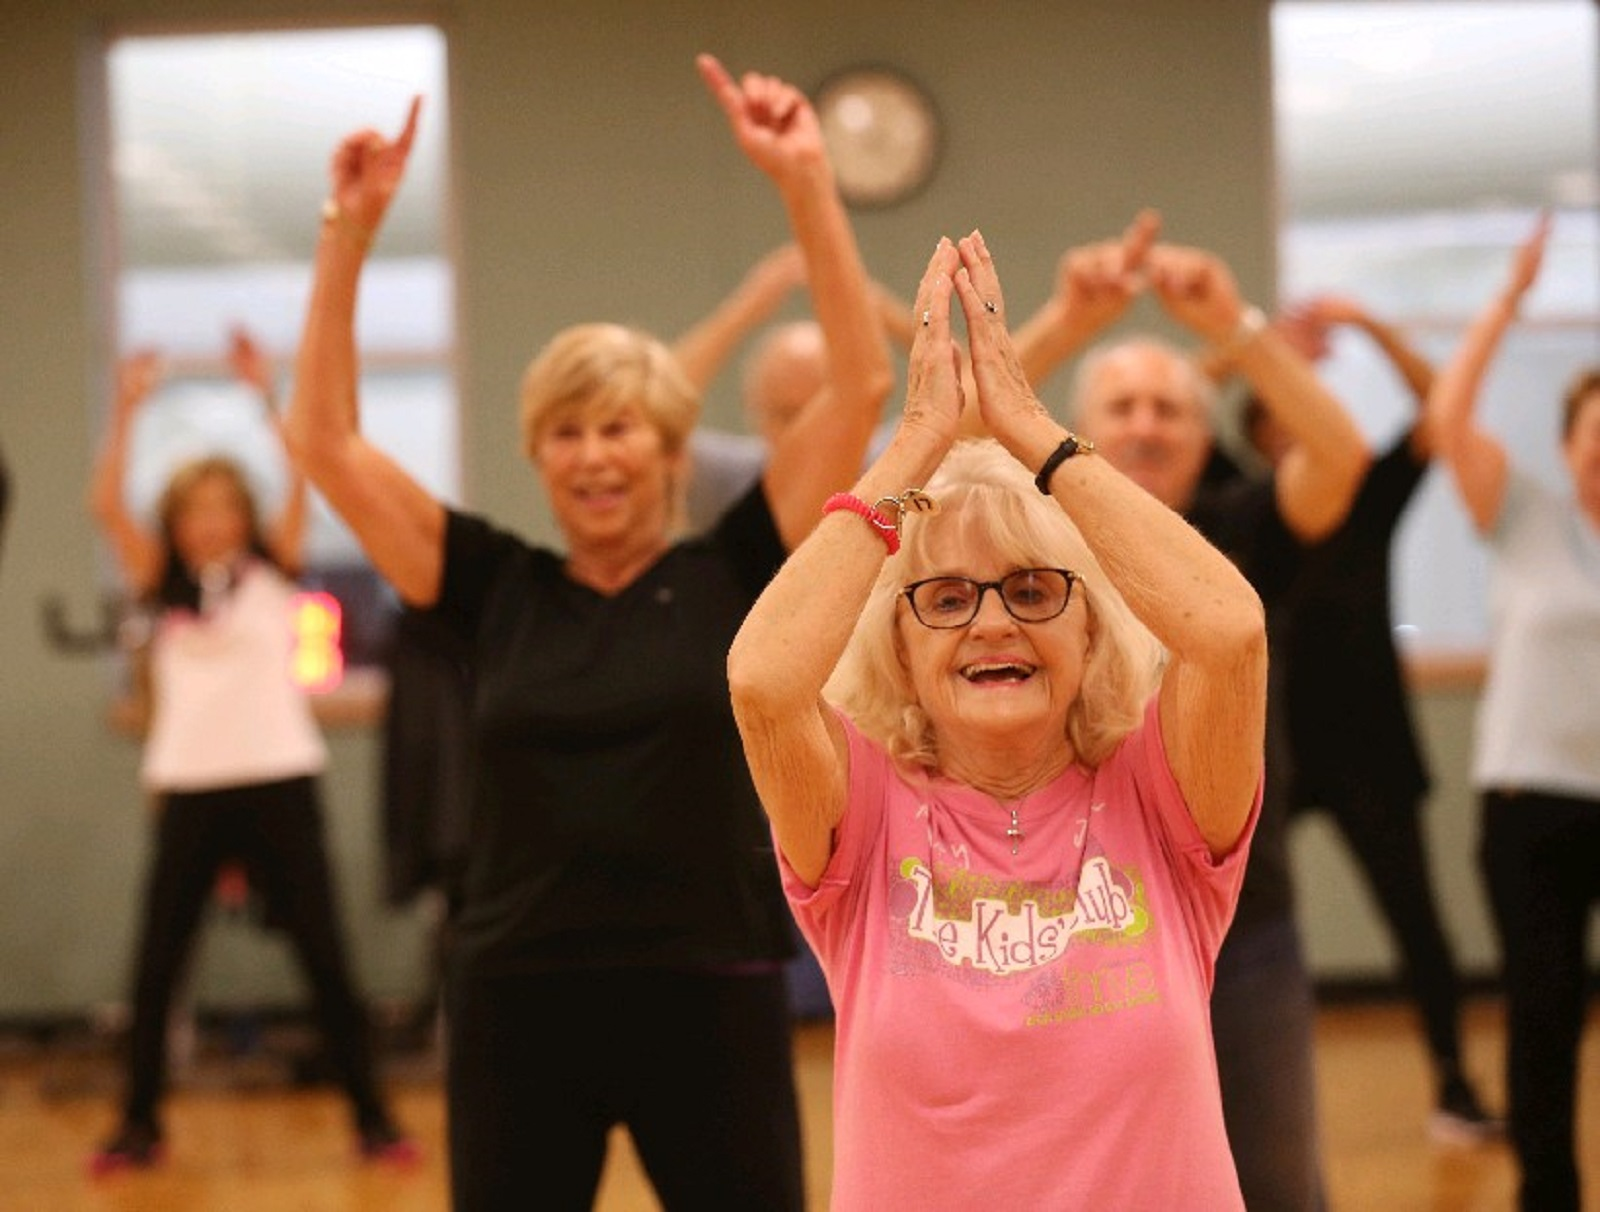 Those looking to keep fit have chances at exercise classes across the  region, including Zumba